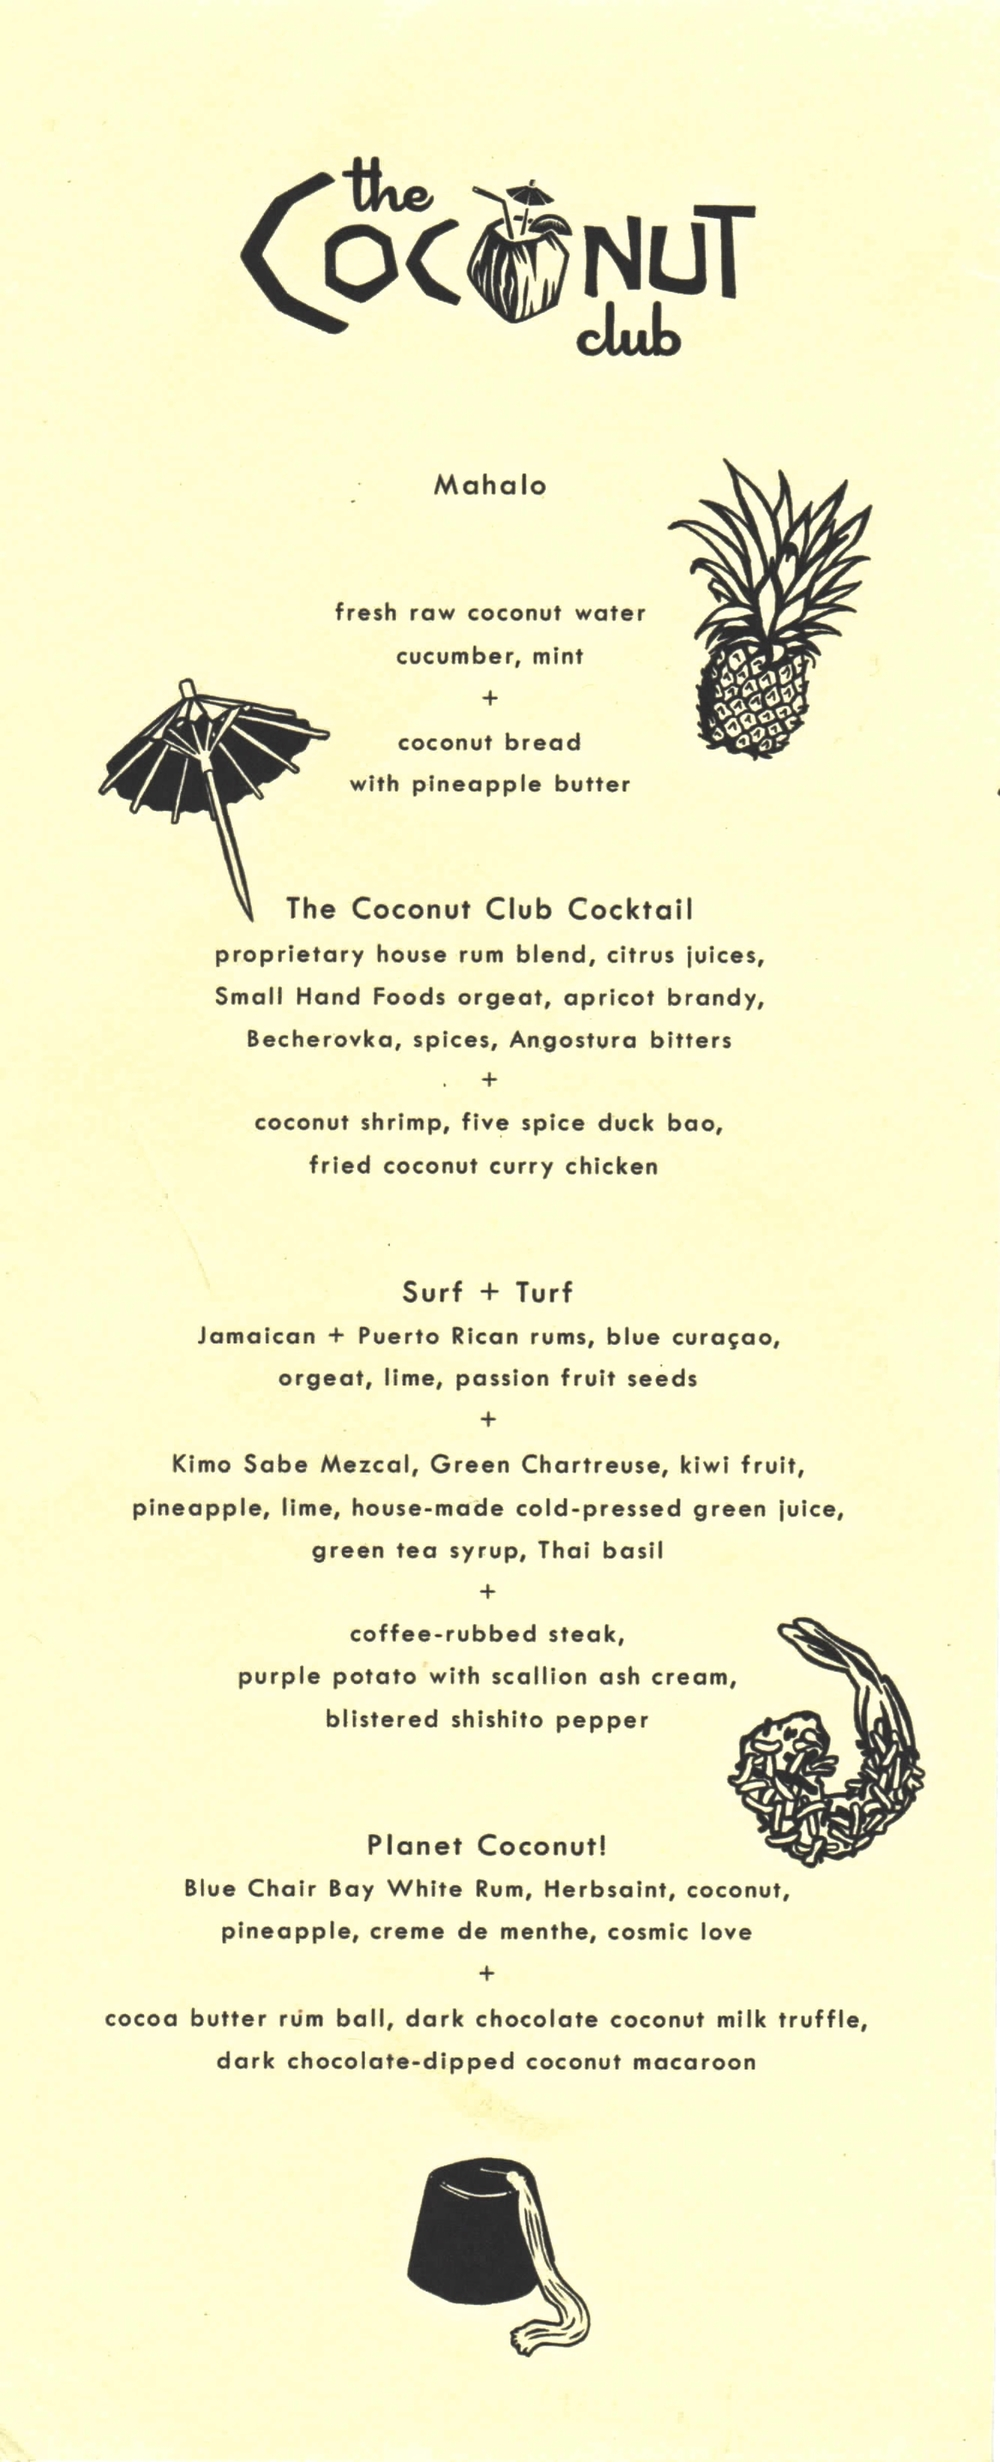 coconut-club-menu.jpg